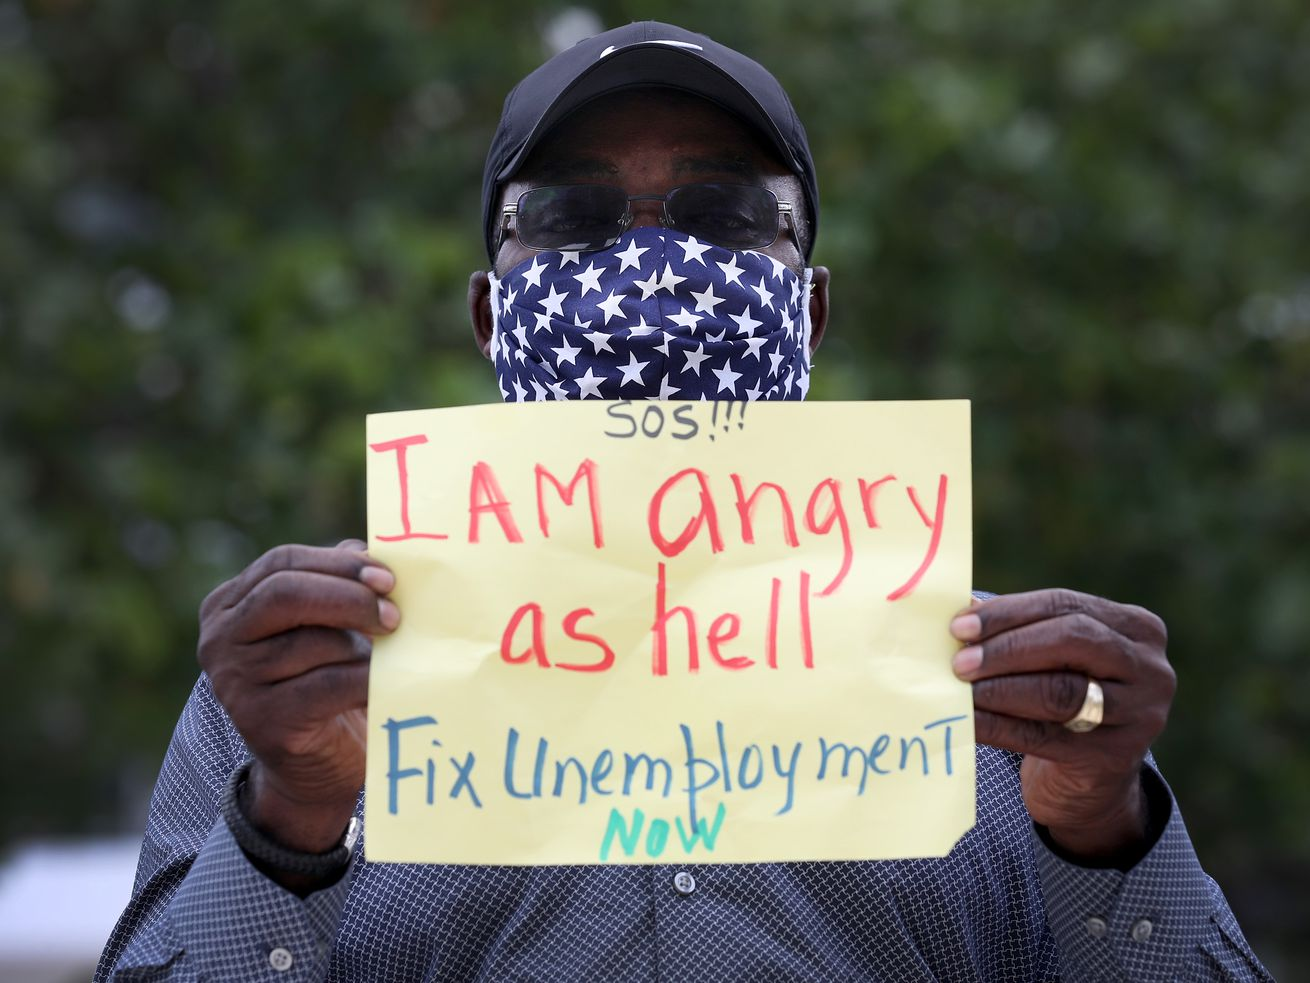 """The man, in a blue mask with white stars, holds a sign written on a yellow piece of paper. It reads: """"SOS!!! I AM angry as hell Fix Unemployment NOW."""""""